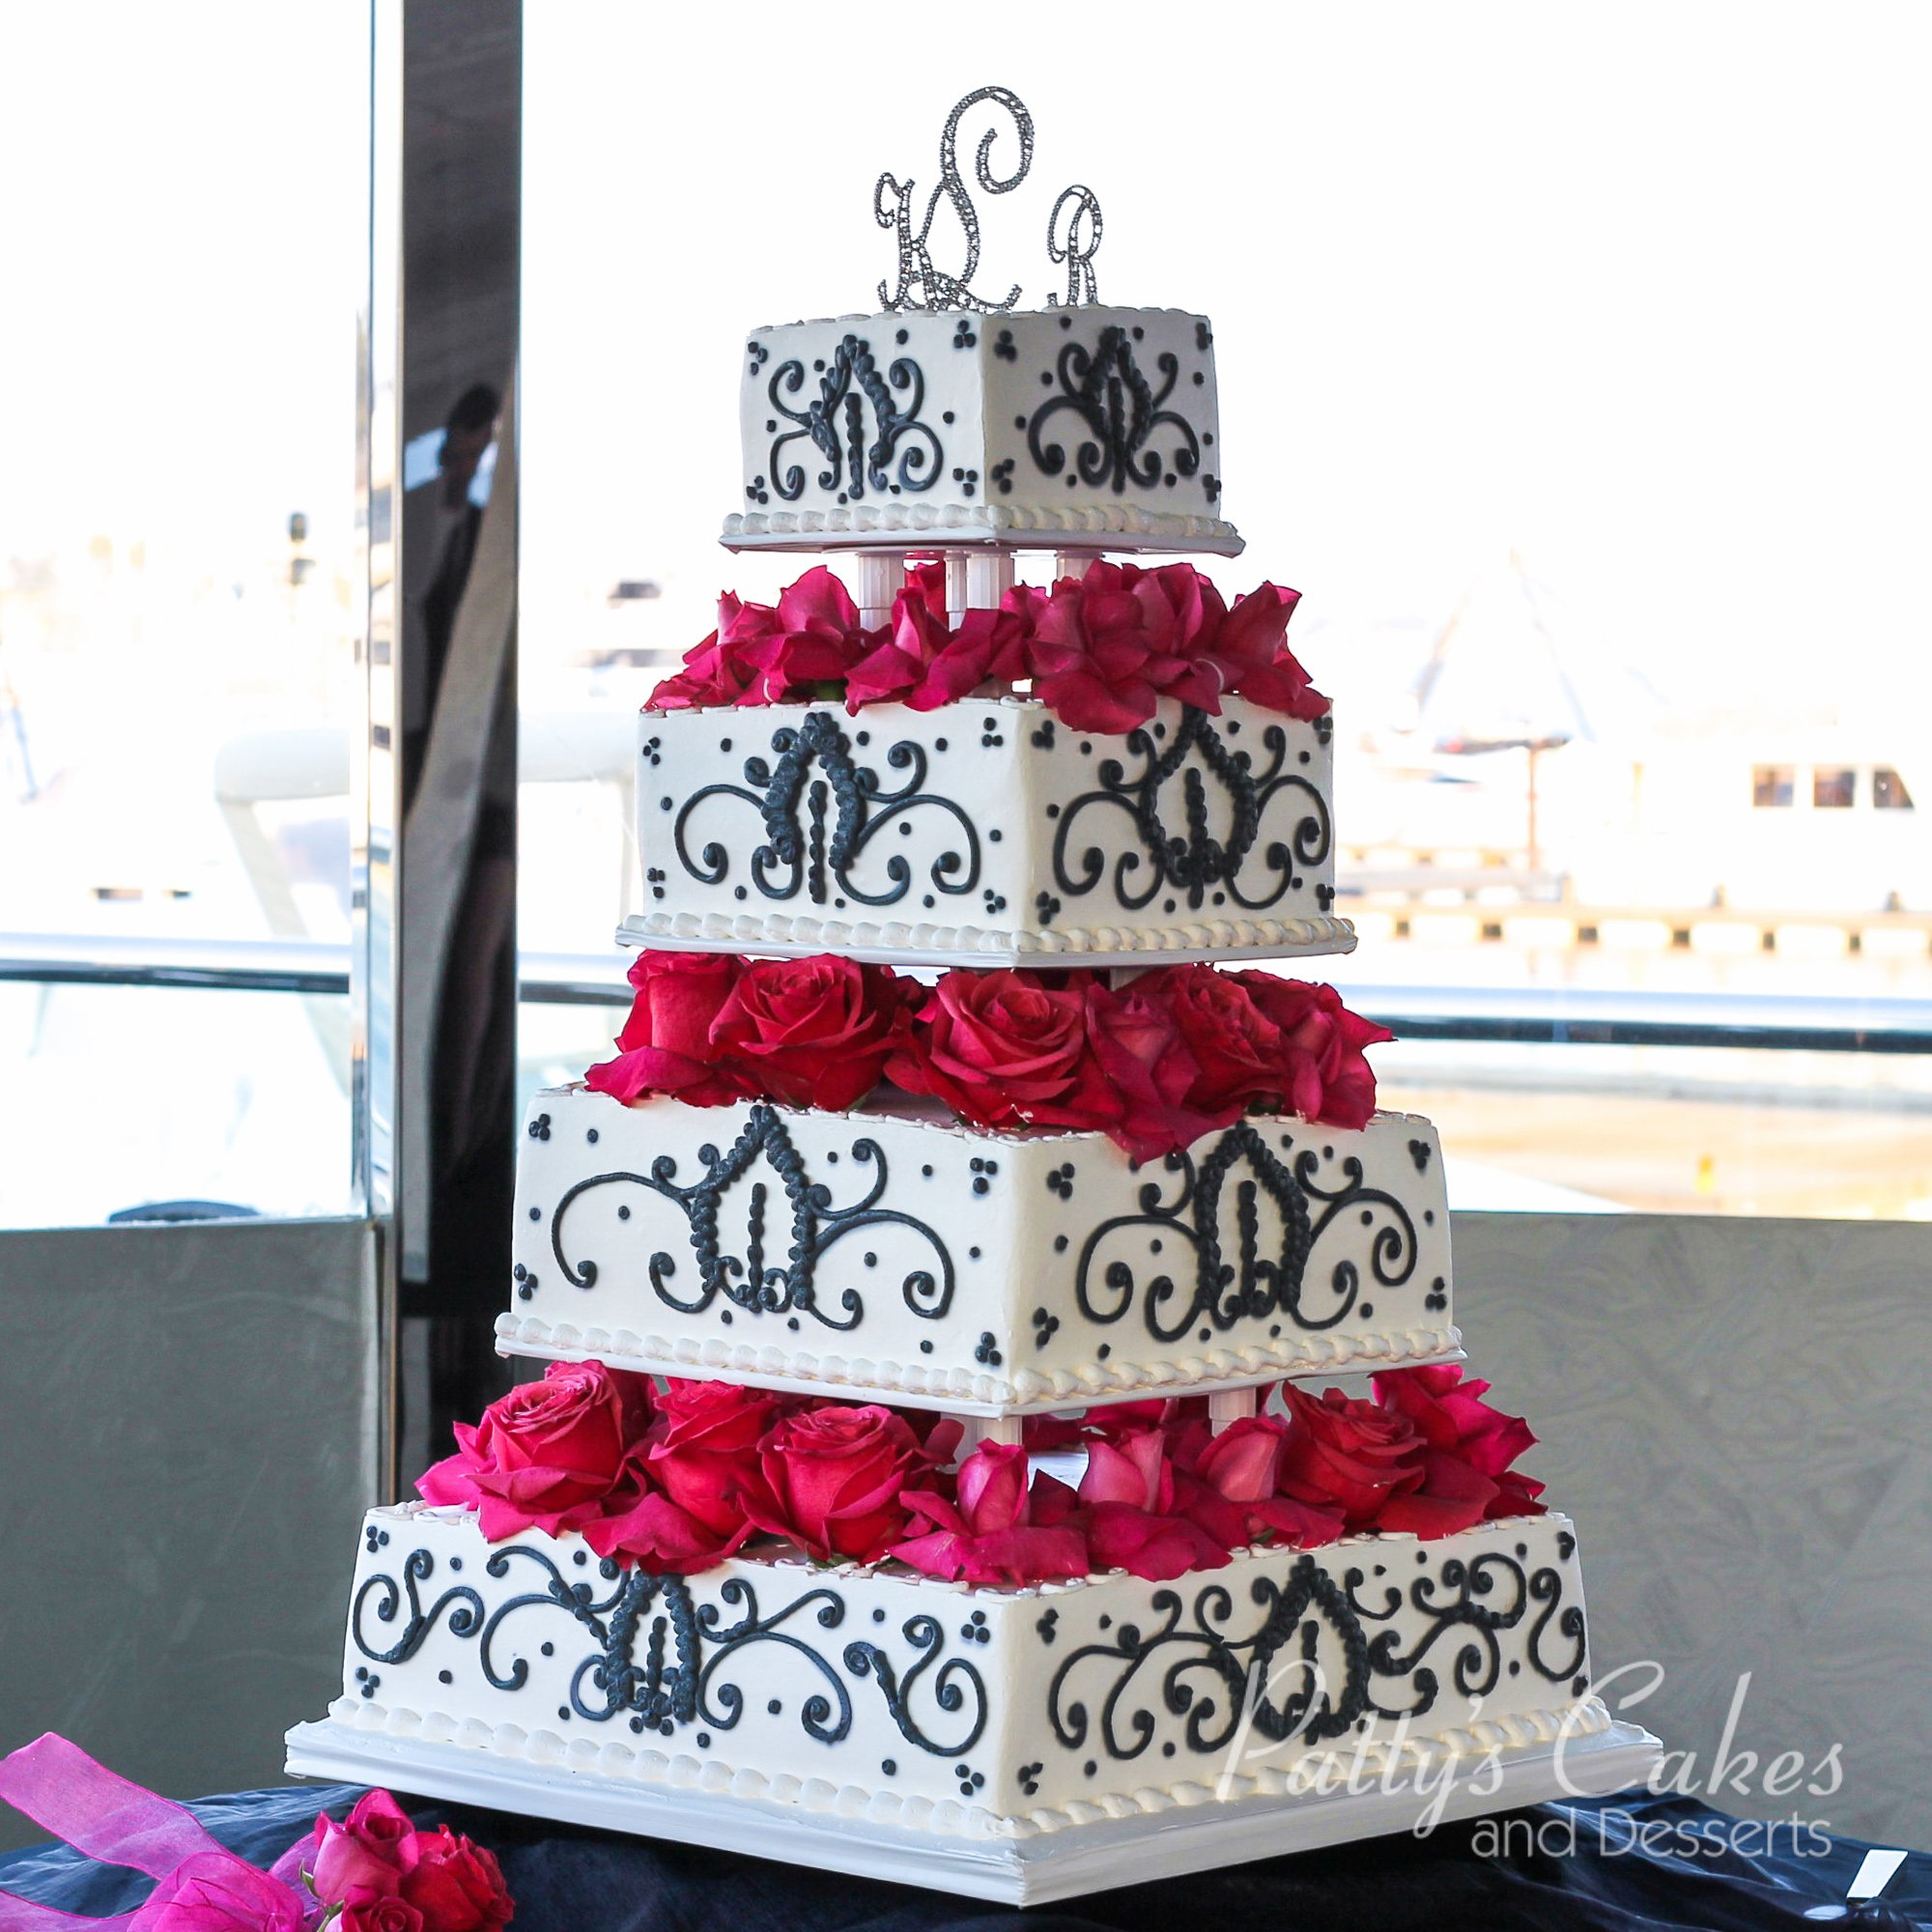 Wedding Cake Gallery Patty s Cakes and Desserts